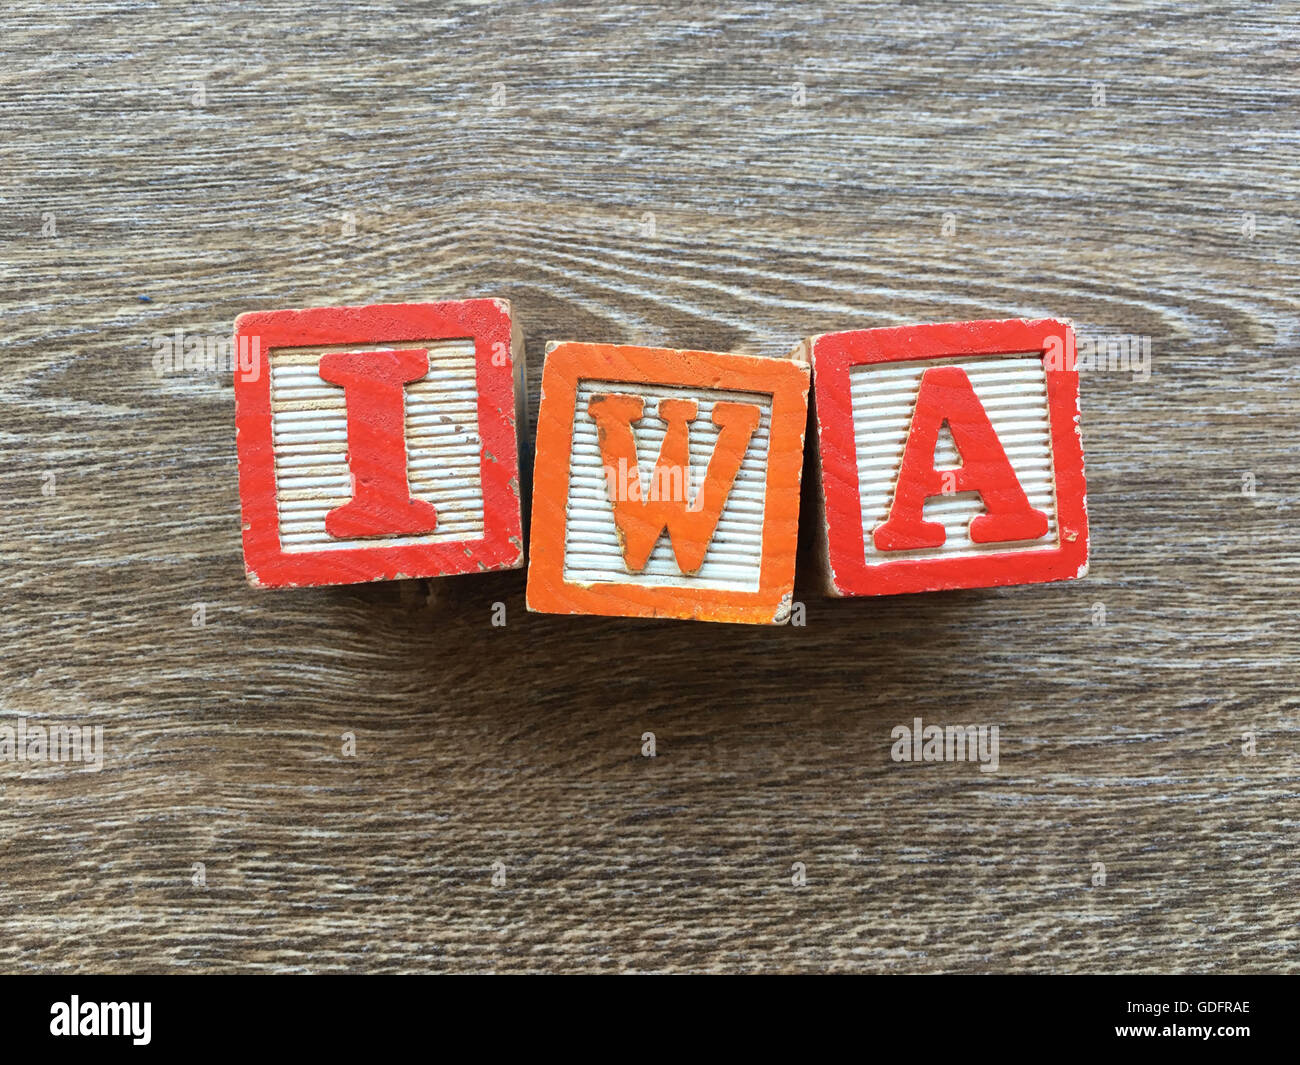 Iwa name written with wood block letter toys - Stock Image